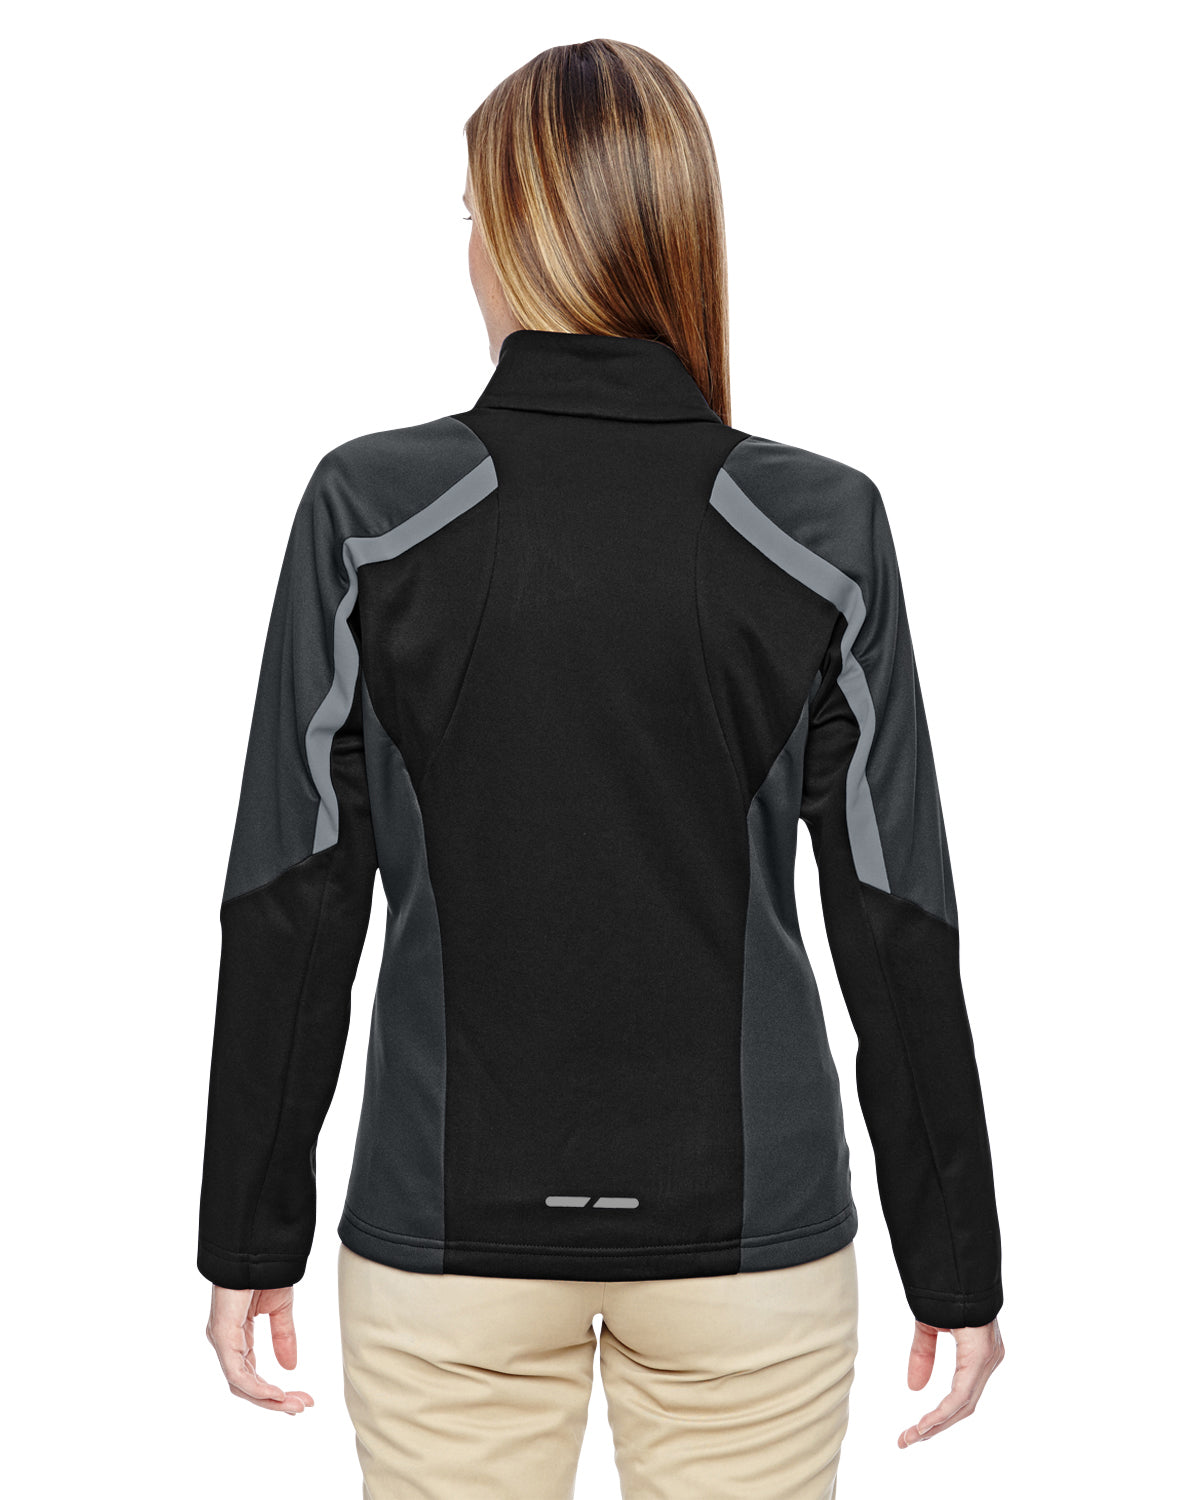 NORTH END LADIES STRIKE COLOR BLOCK FLEECE JACKET